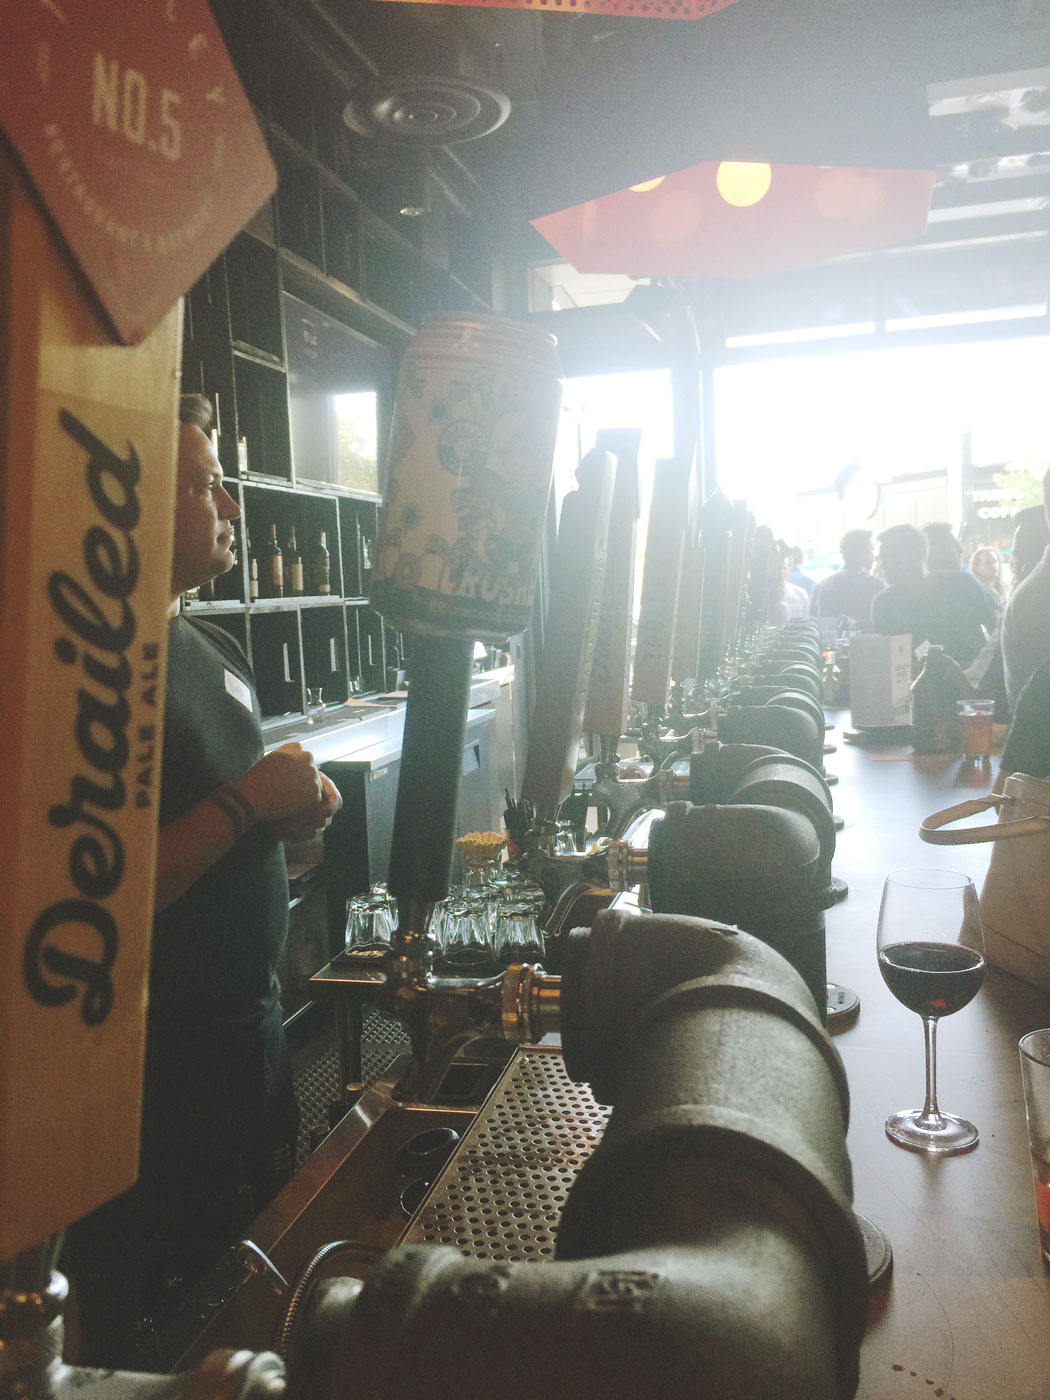 trolley-no-5-five-beer-brewery-on-tap